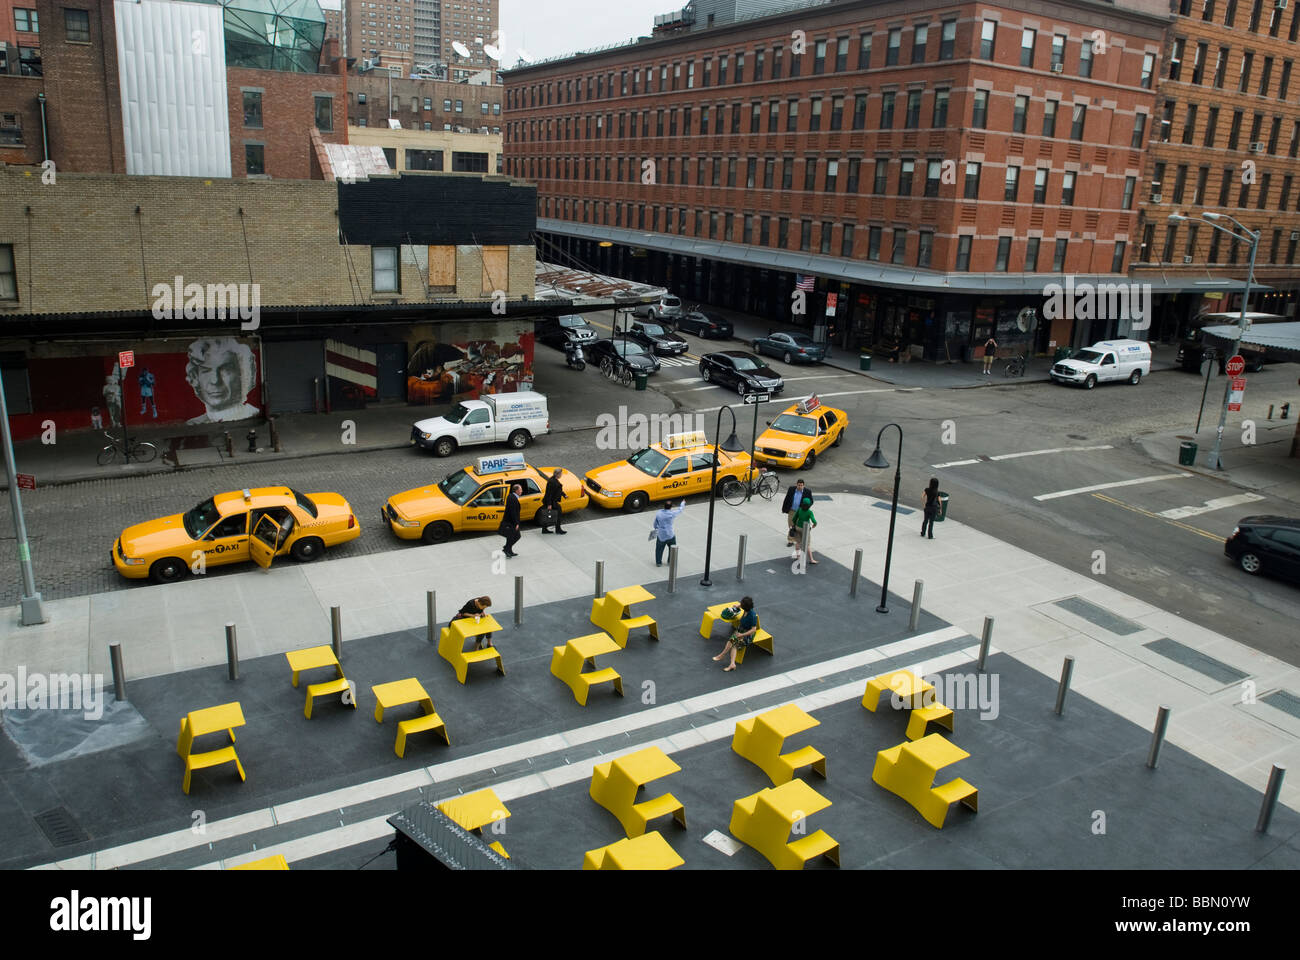 Taxis line up in front of the Standard Hotel in the plaza viewed from the new High Line Park - Stock Image